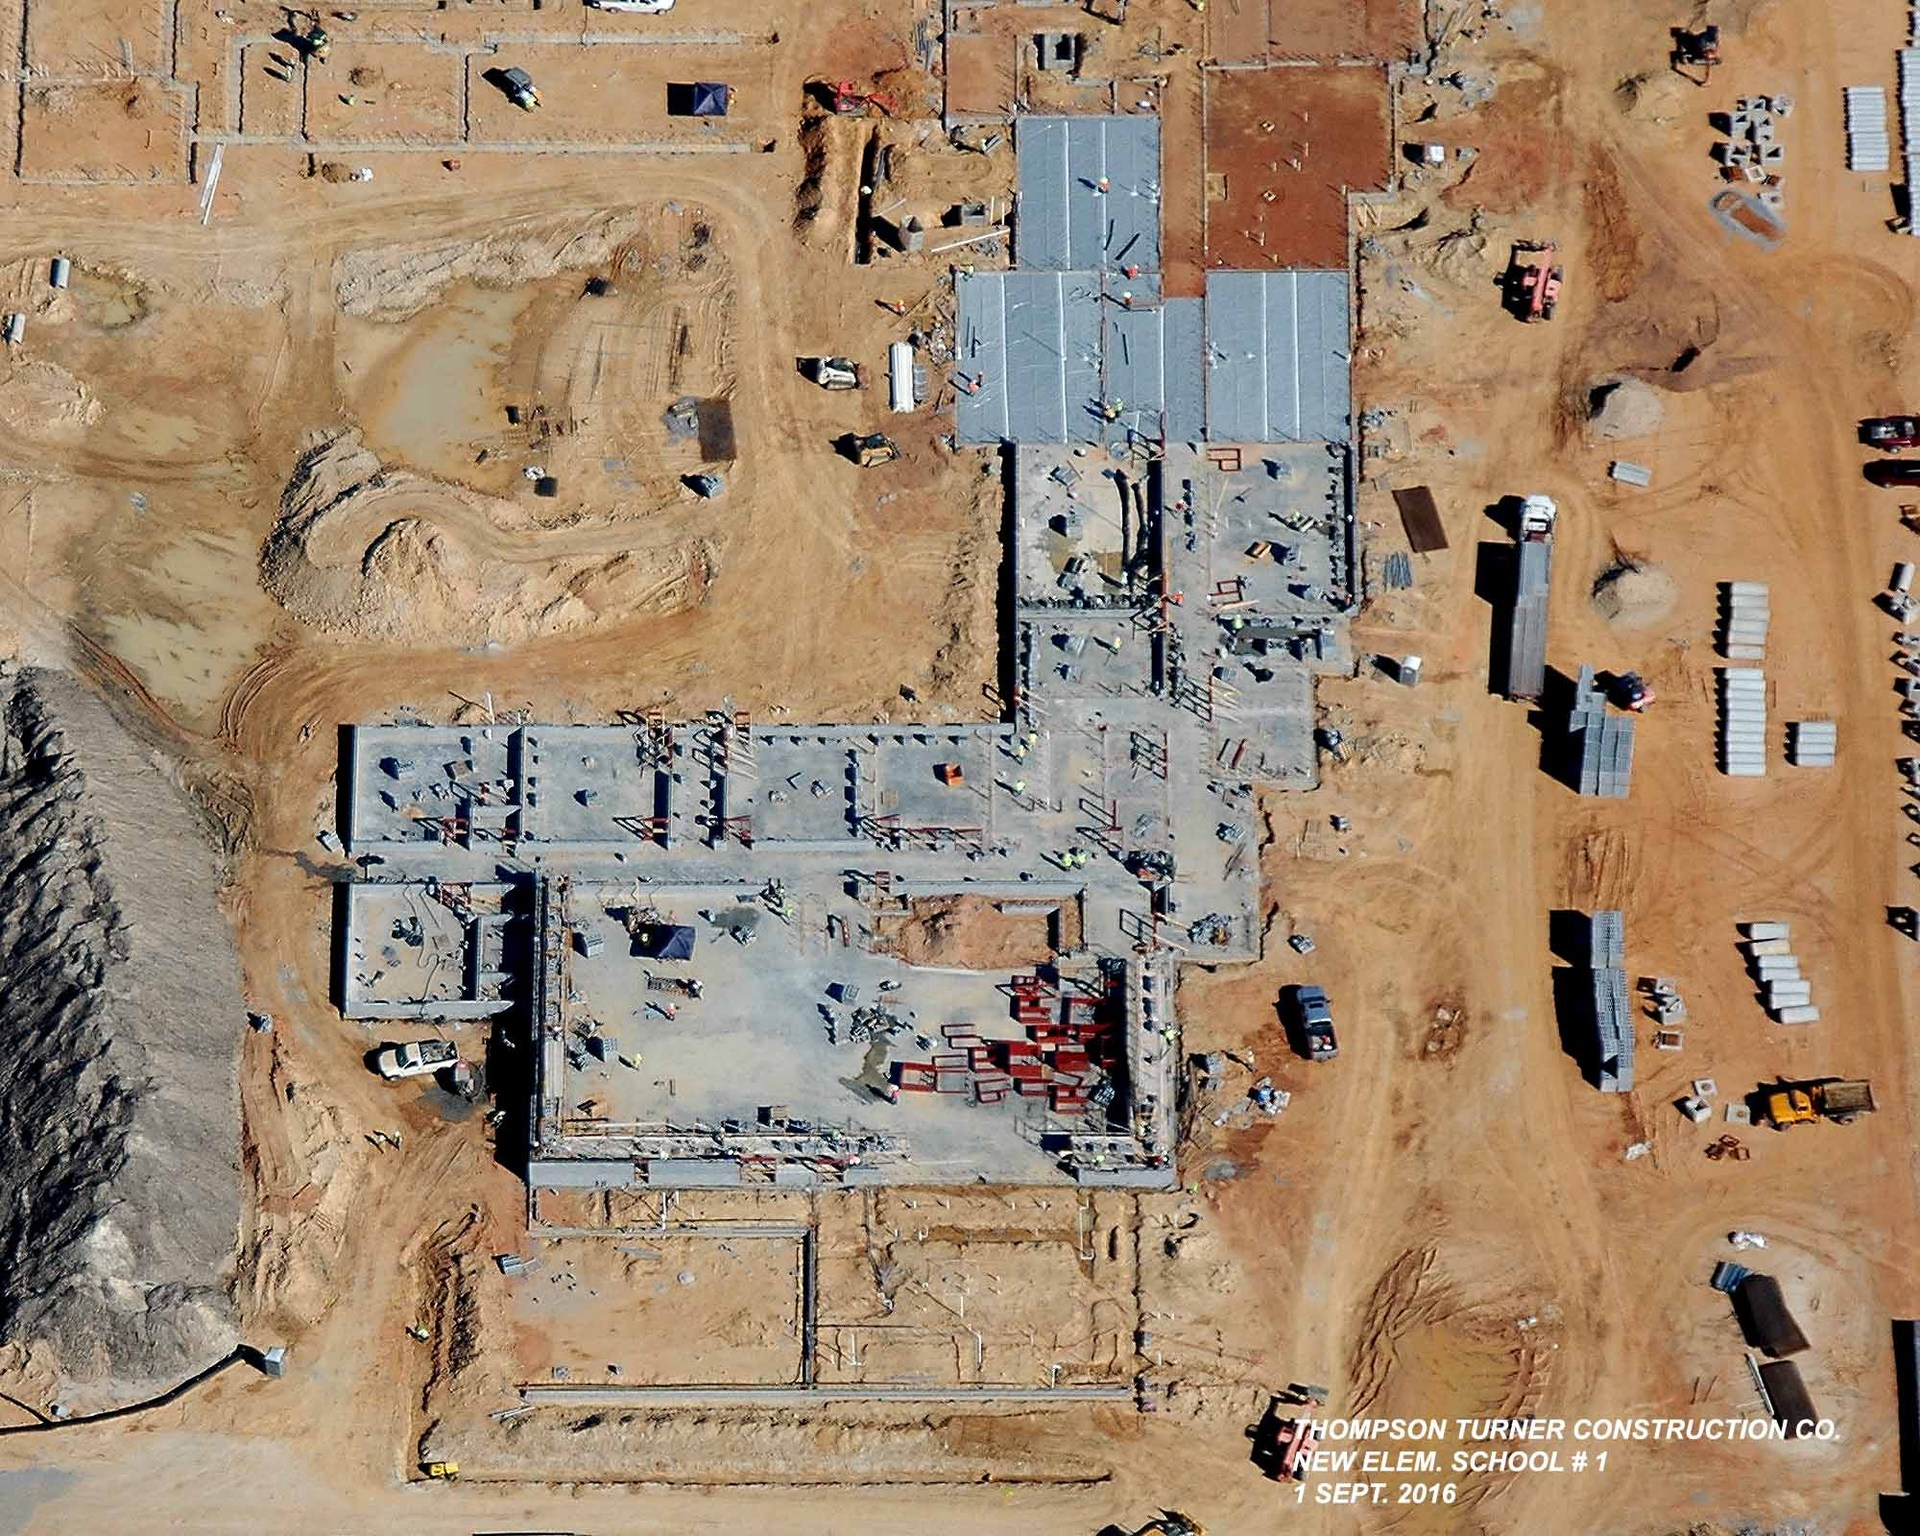 Overhead View of New Elementary School Construction